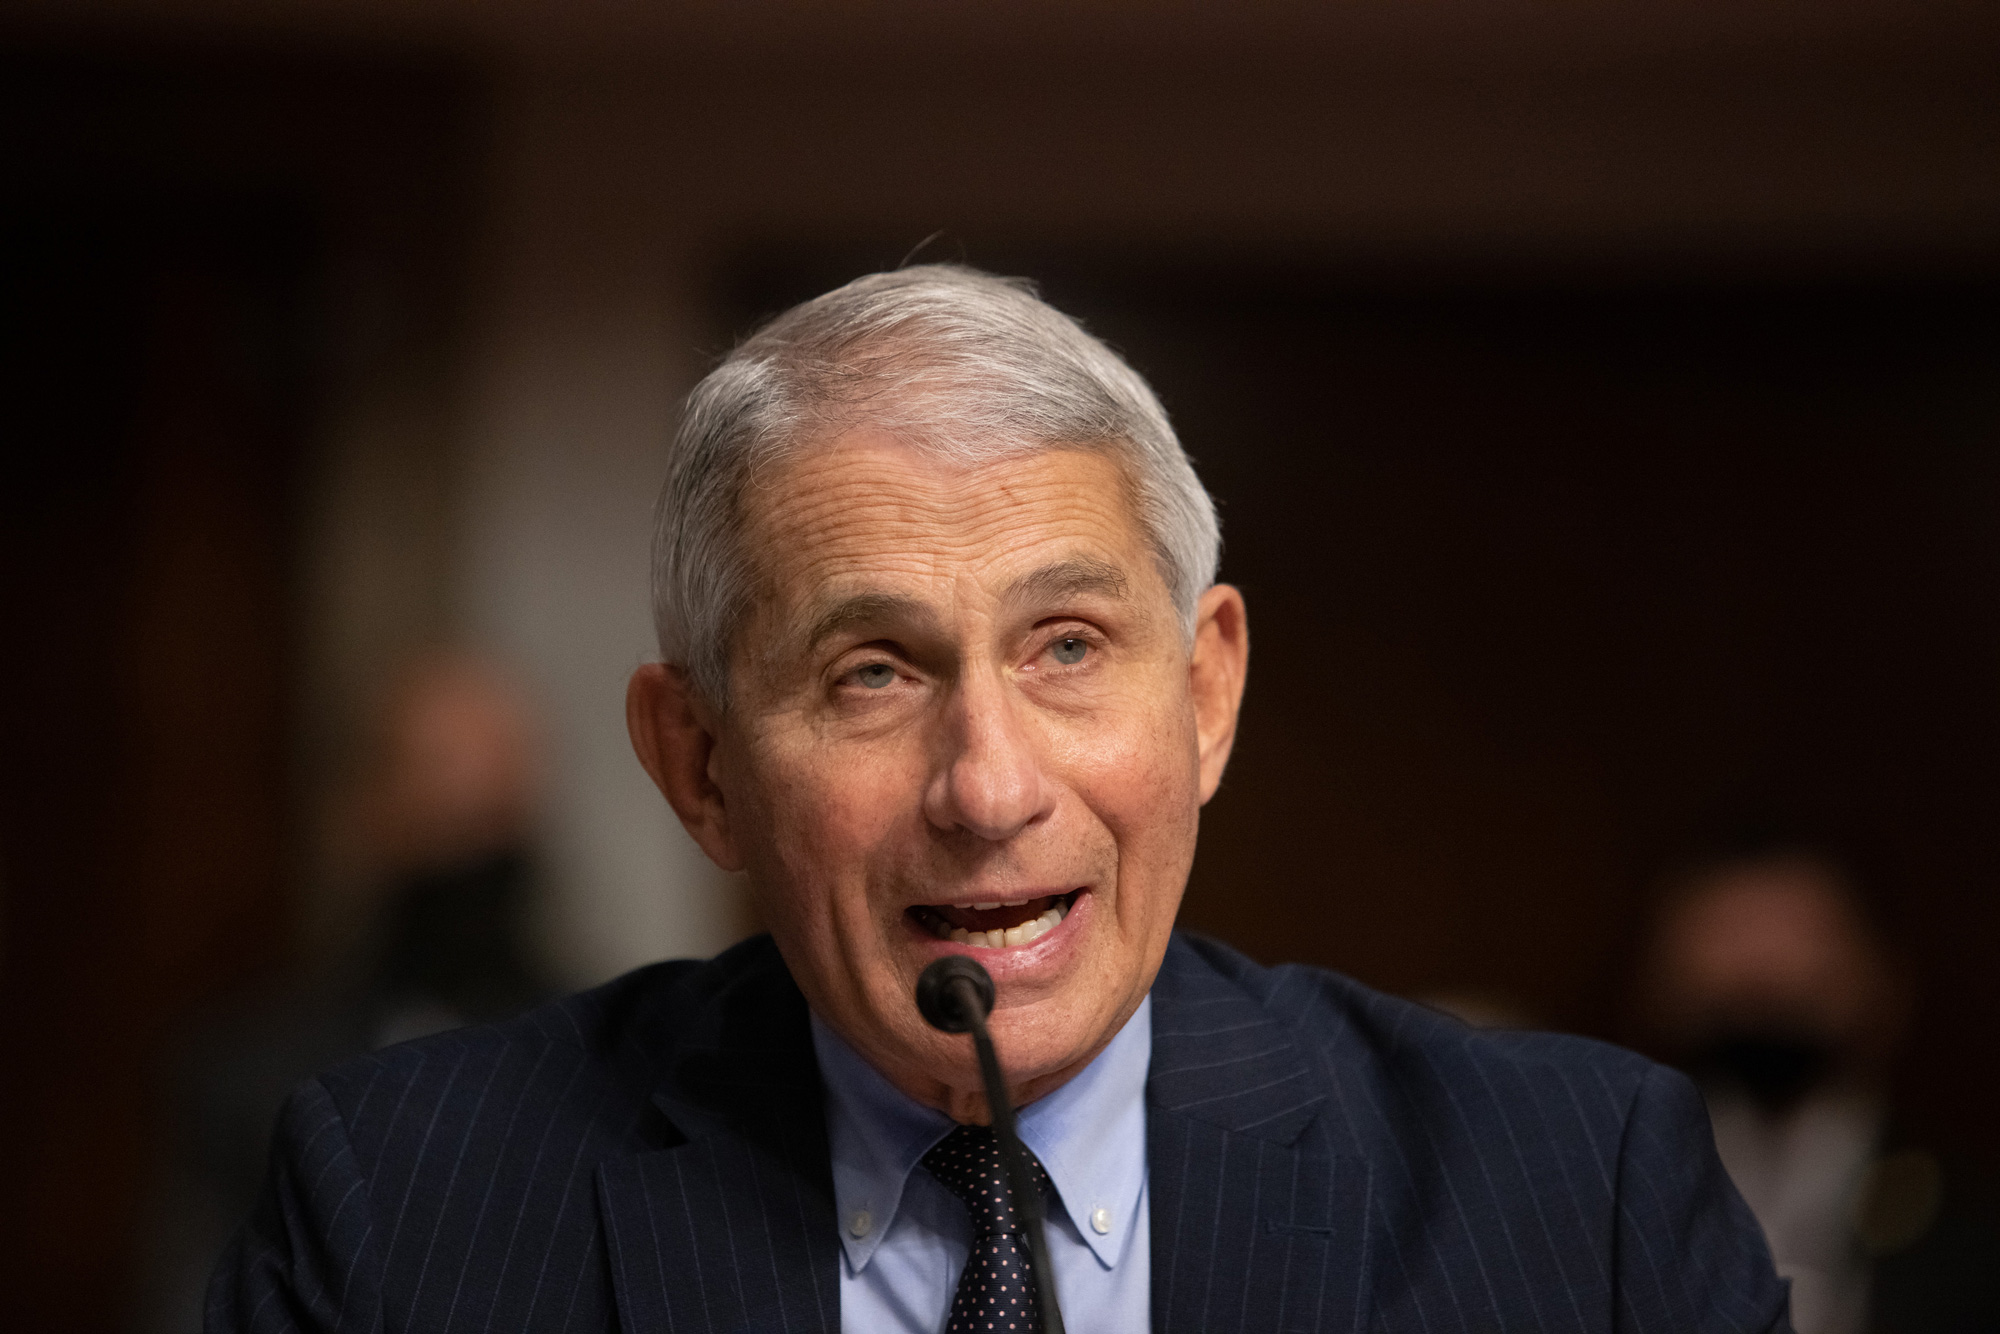 Dr. Anthony Fauci testifies during a US Senate Senate Health, Education, Labor, and Pensions Committee hearing in Washington, DC, on September 23.